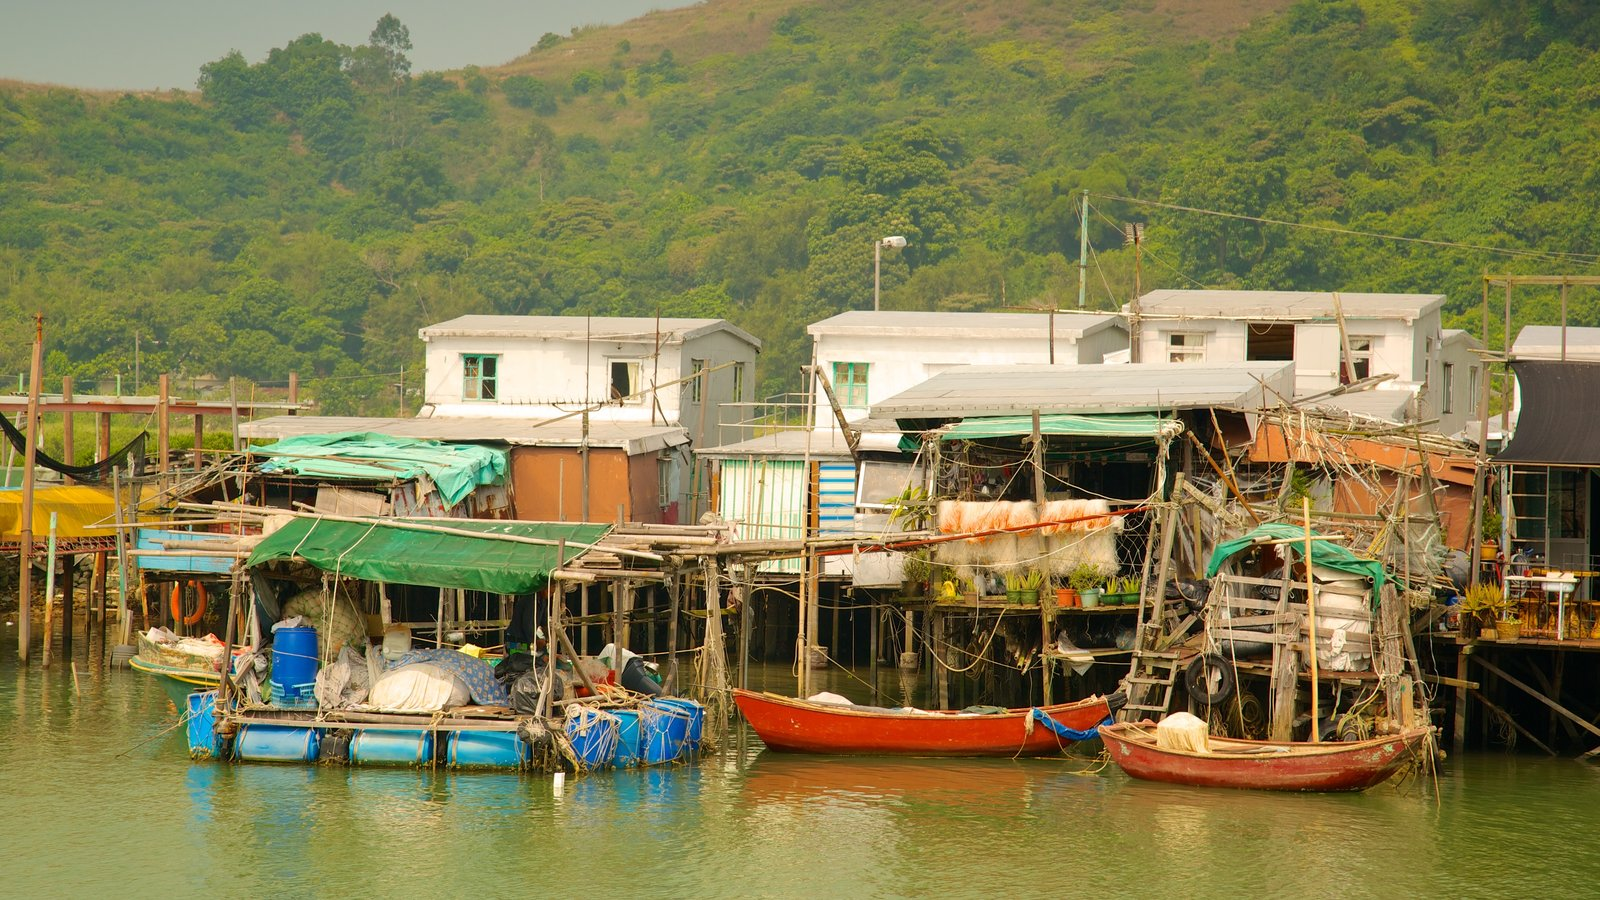 Tai O Fishing Village showing boating, a small town or village and a river or creek